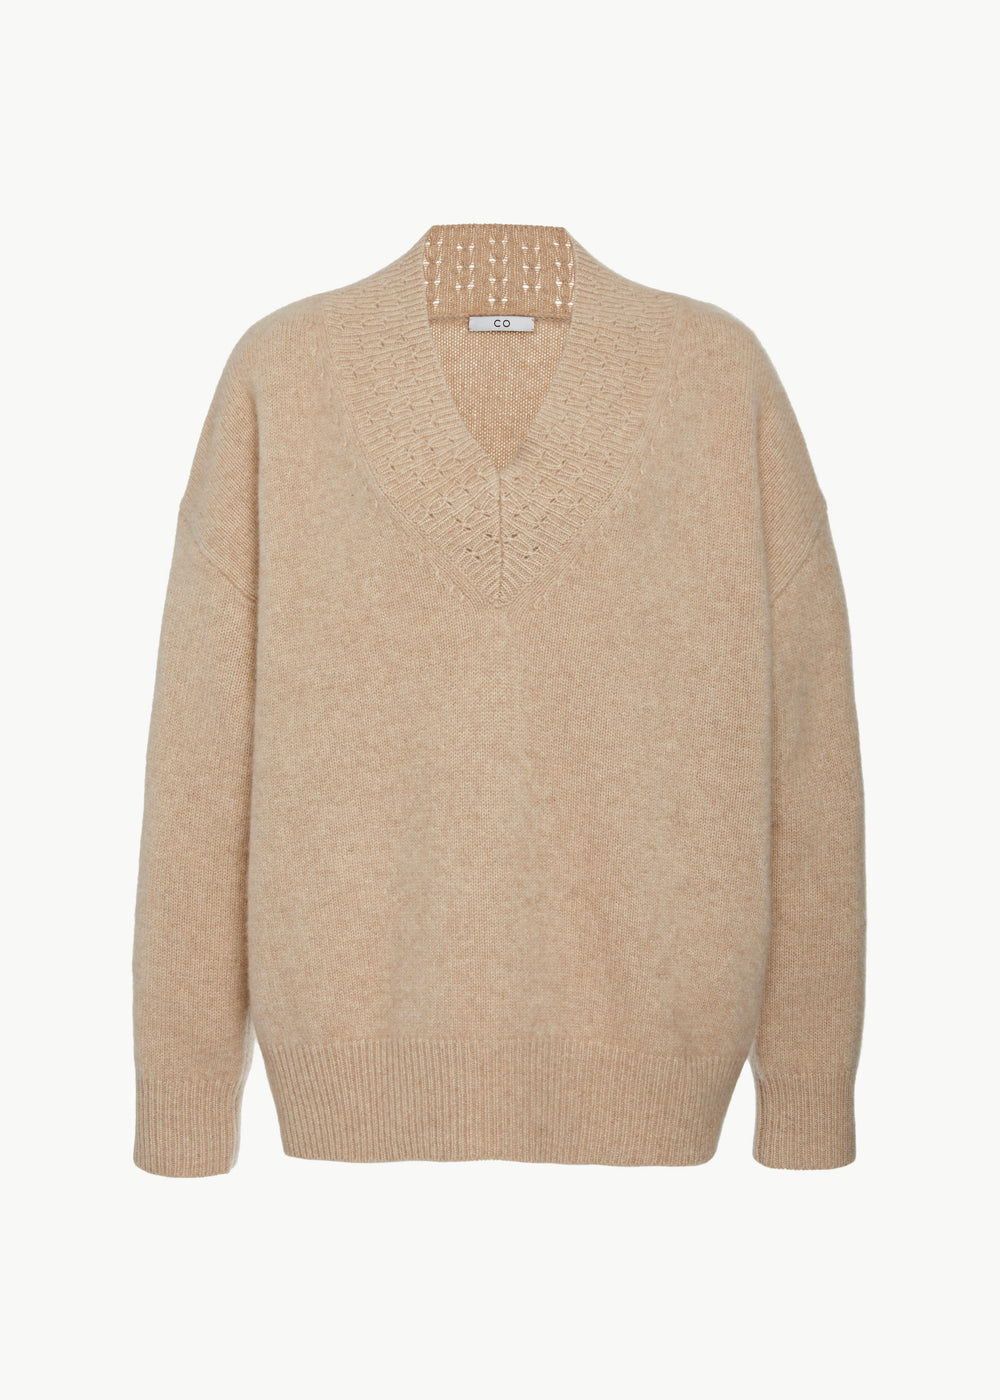 V-Neck Sweater in Cashmere - Sand - CO